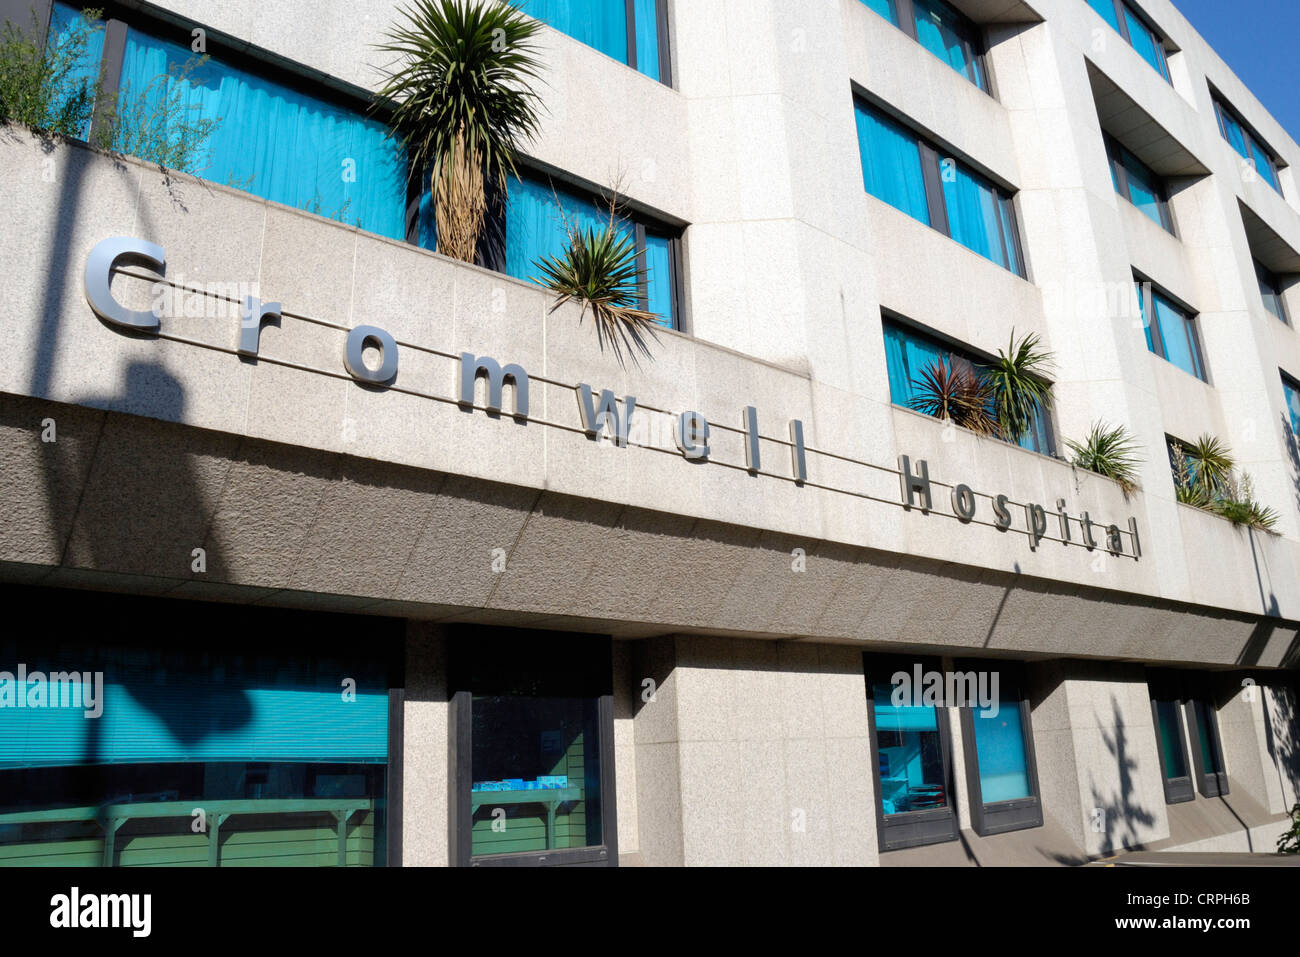 Bupa Cromwell Hospital, an internationally renowned private hospital in Cromwell Road. - Stock Image